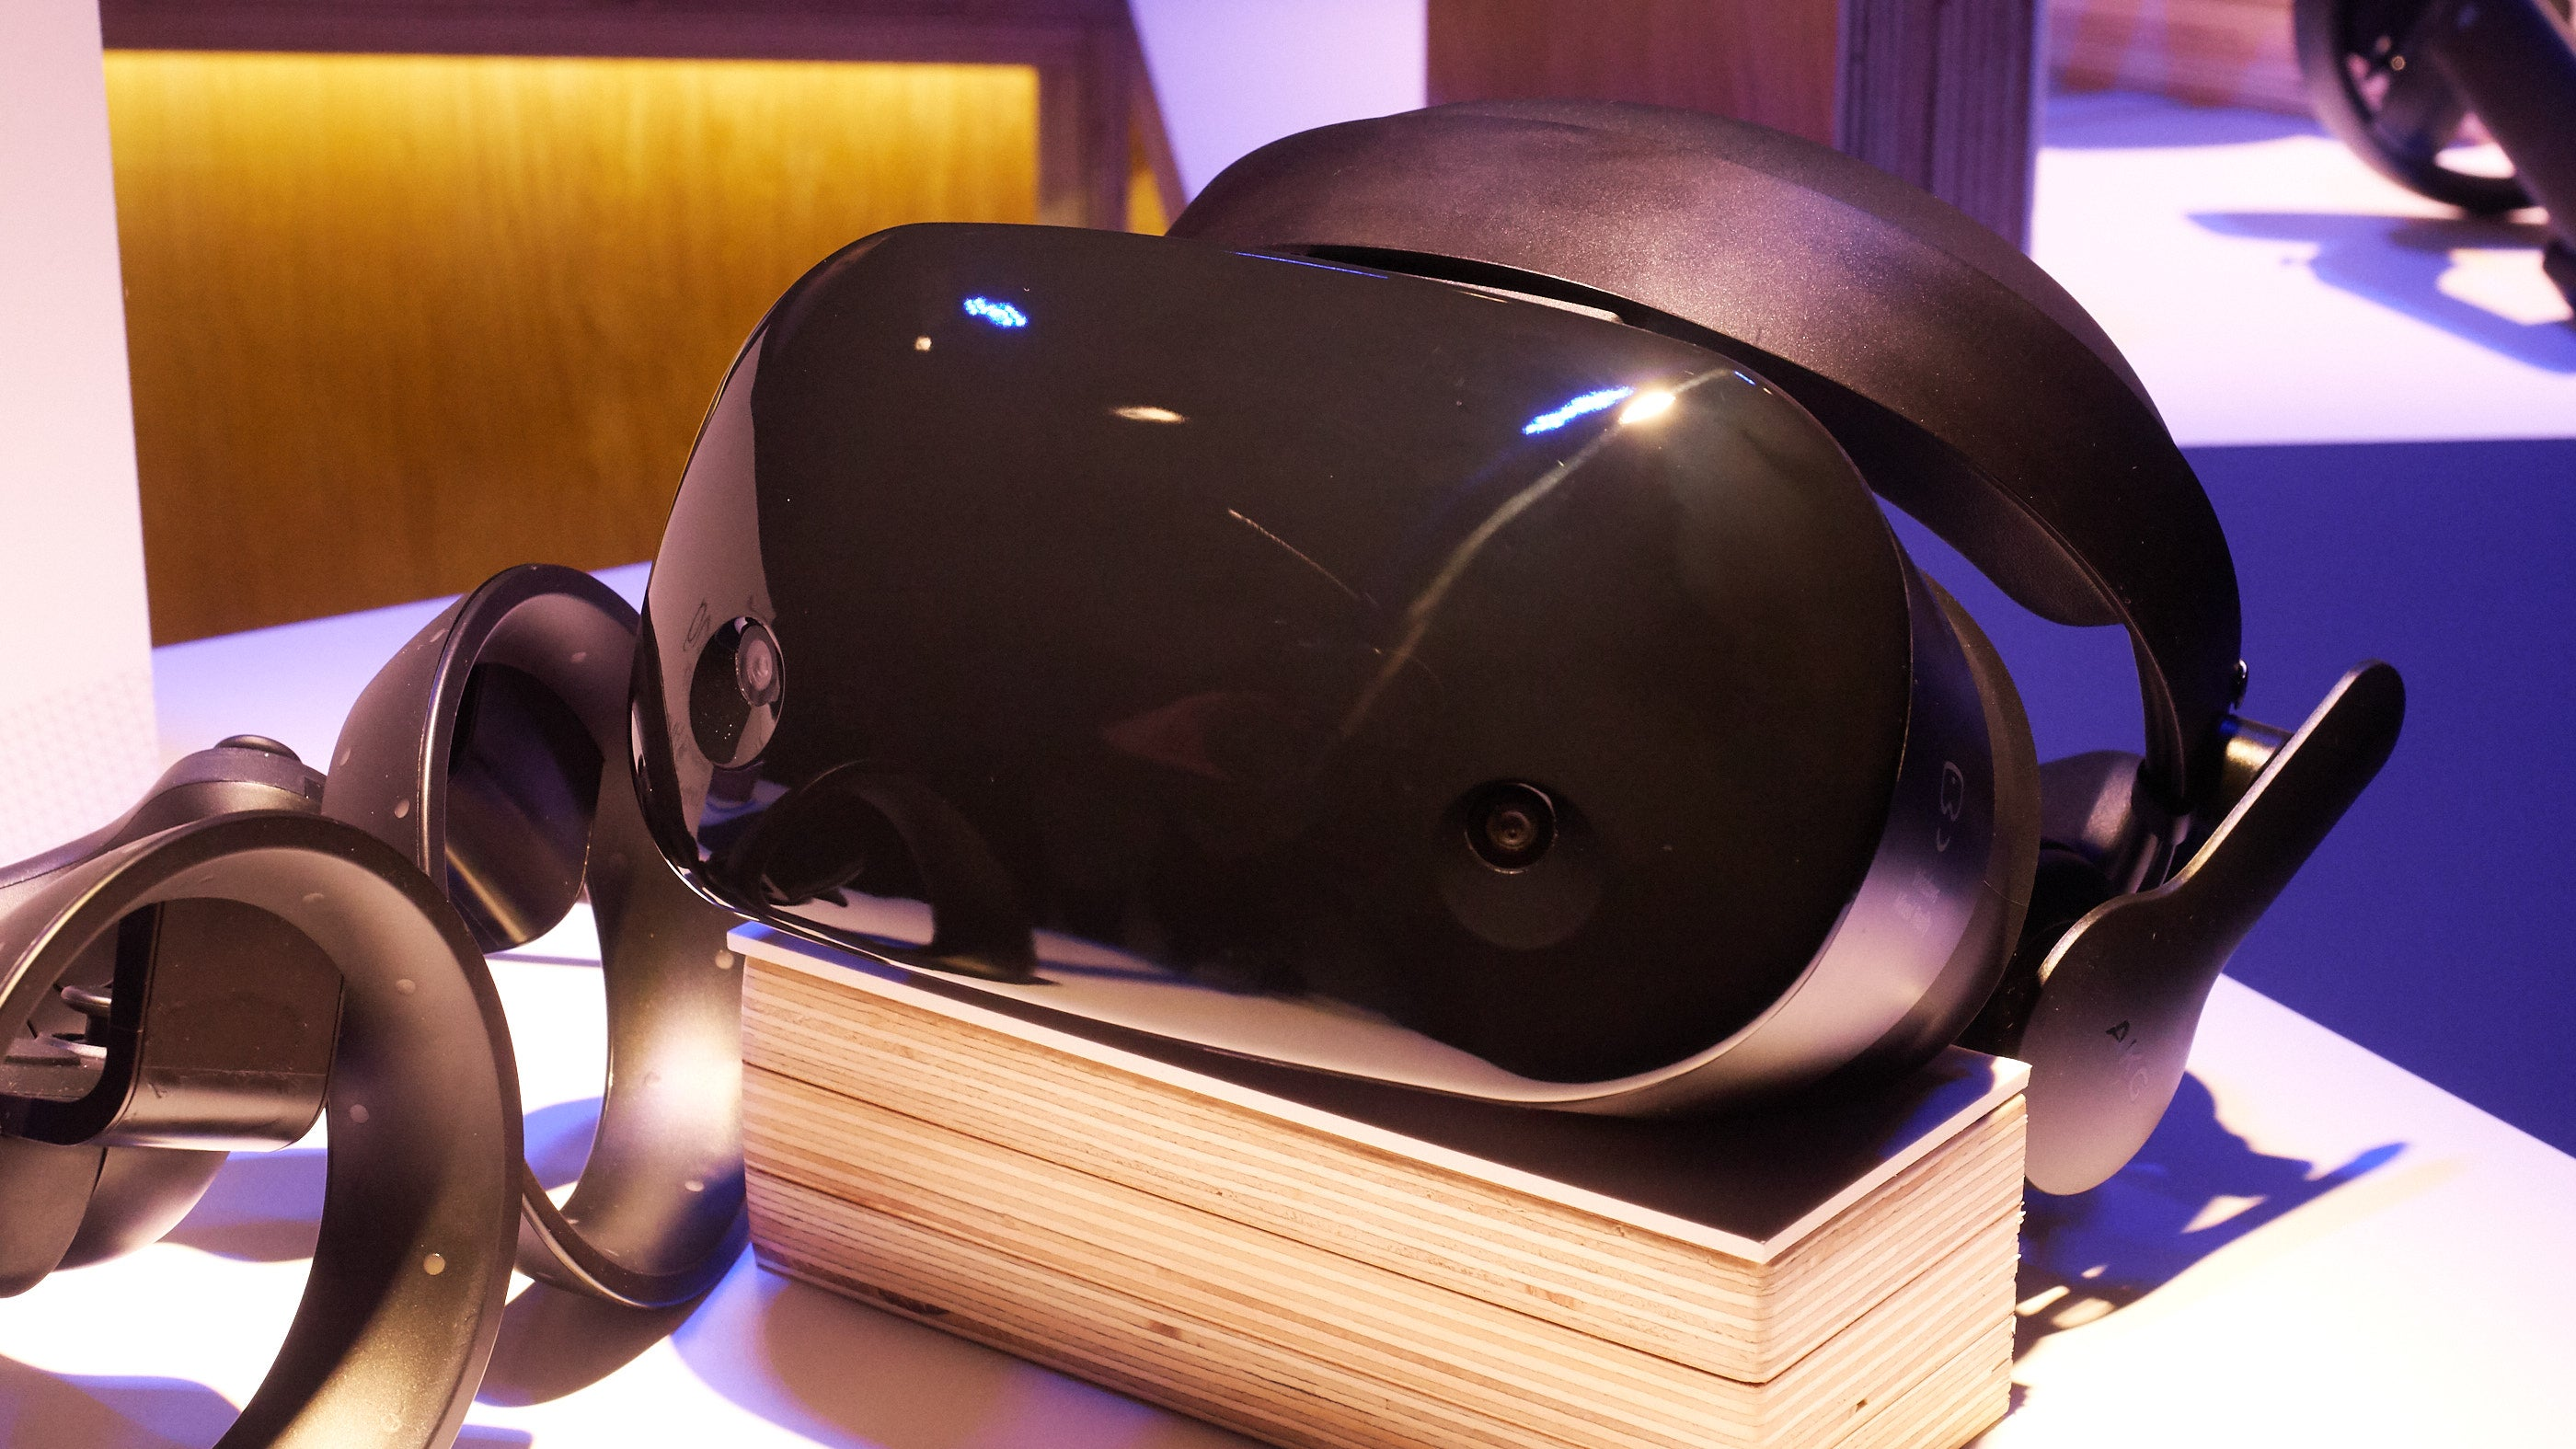 Microsoft's Windows Mixed Reality event: Samsung Odyssey, headset preorders open, and more